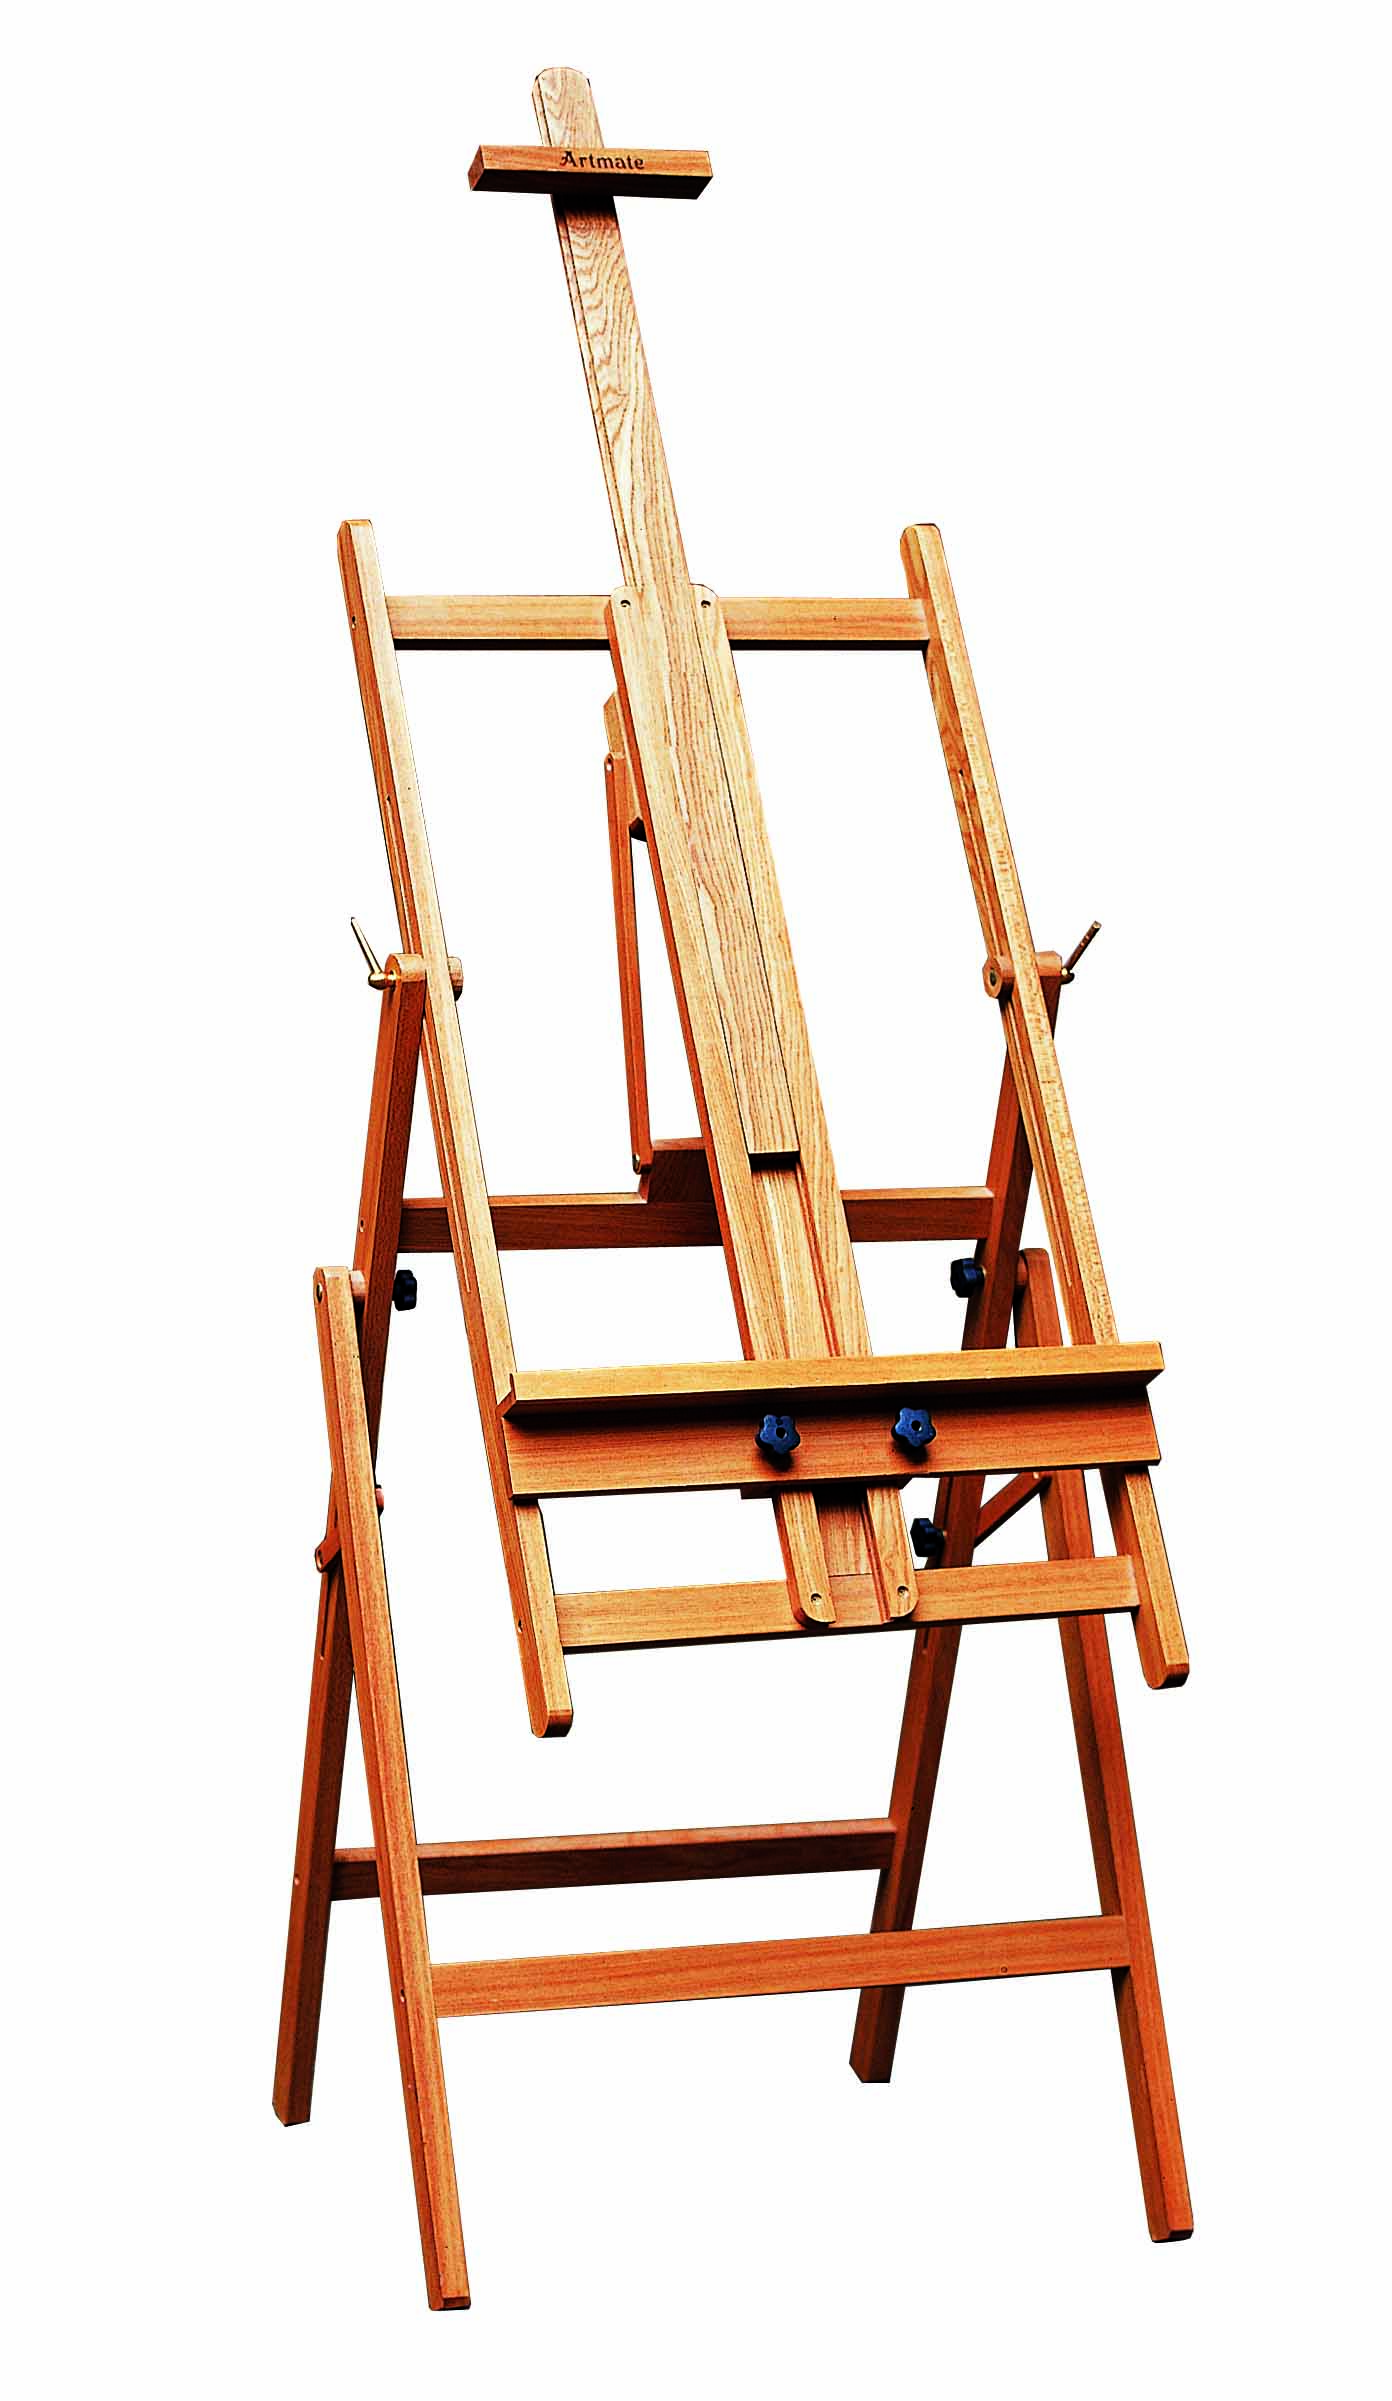 Artist Painting On Easel - SPE